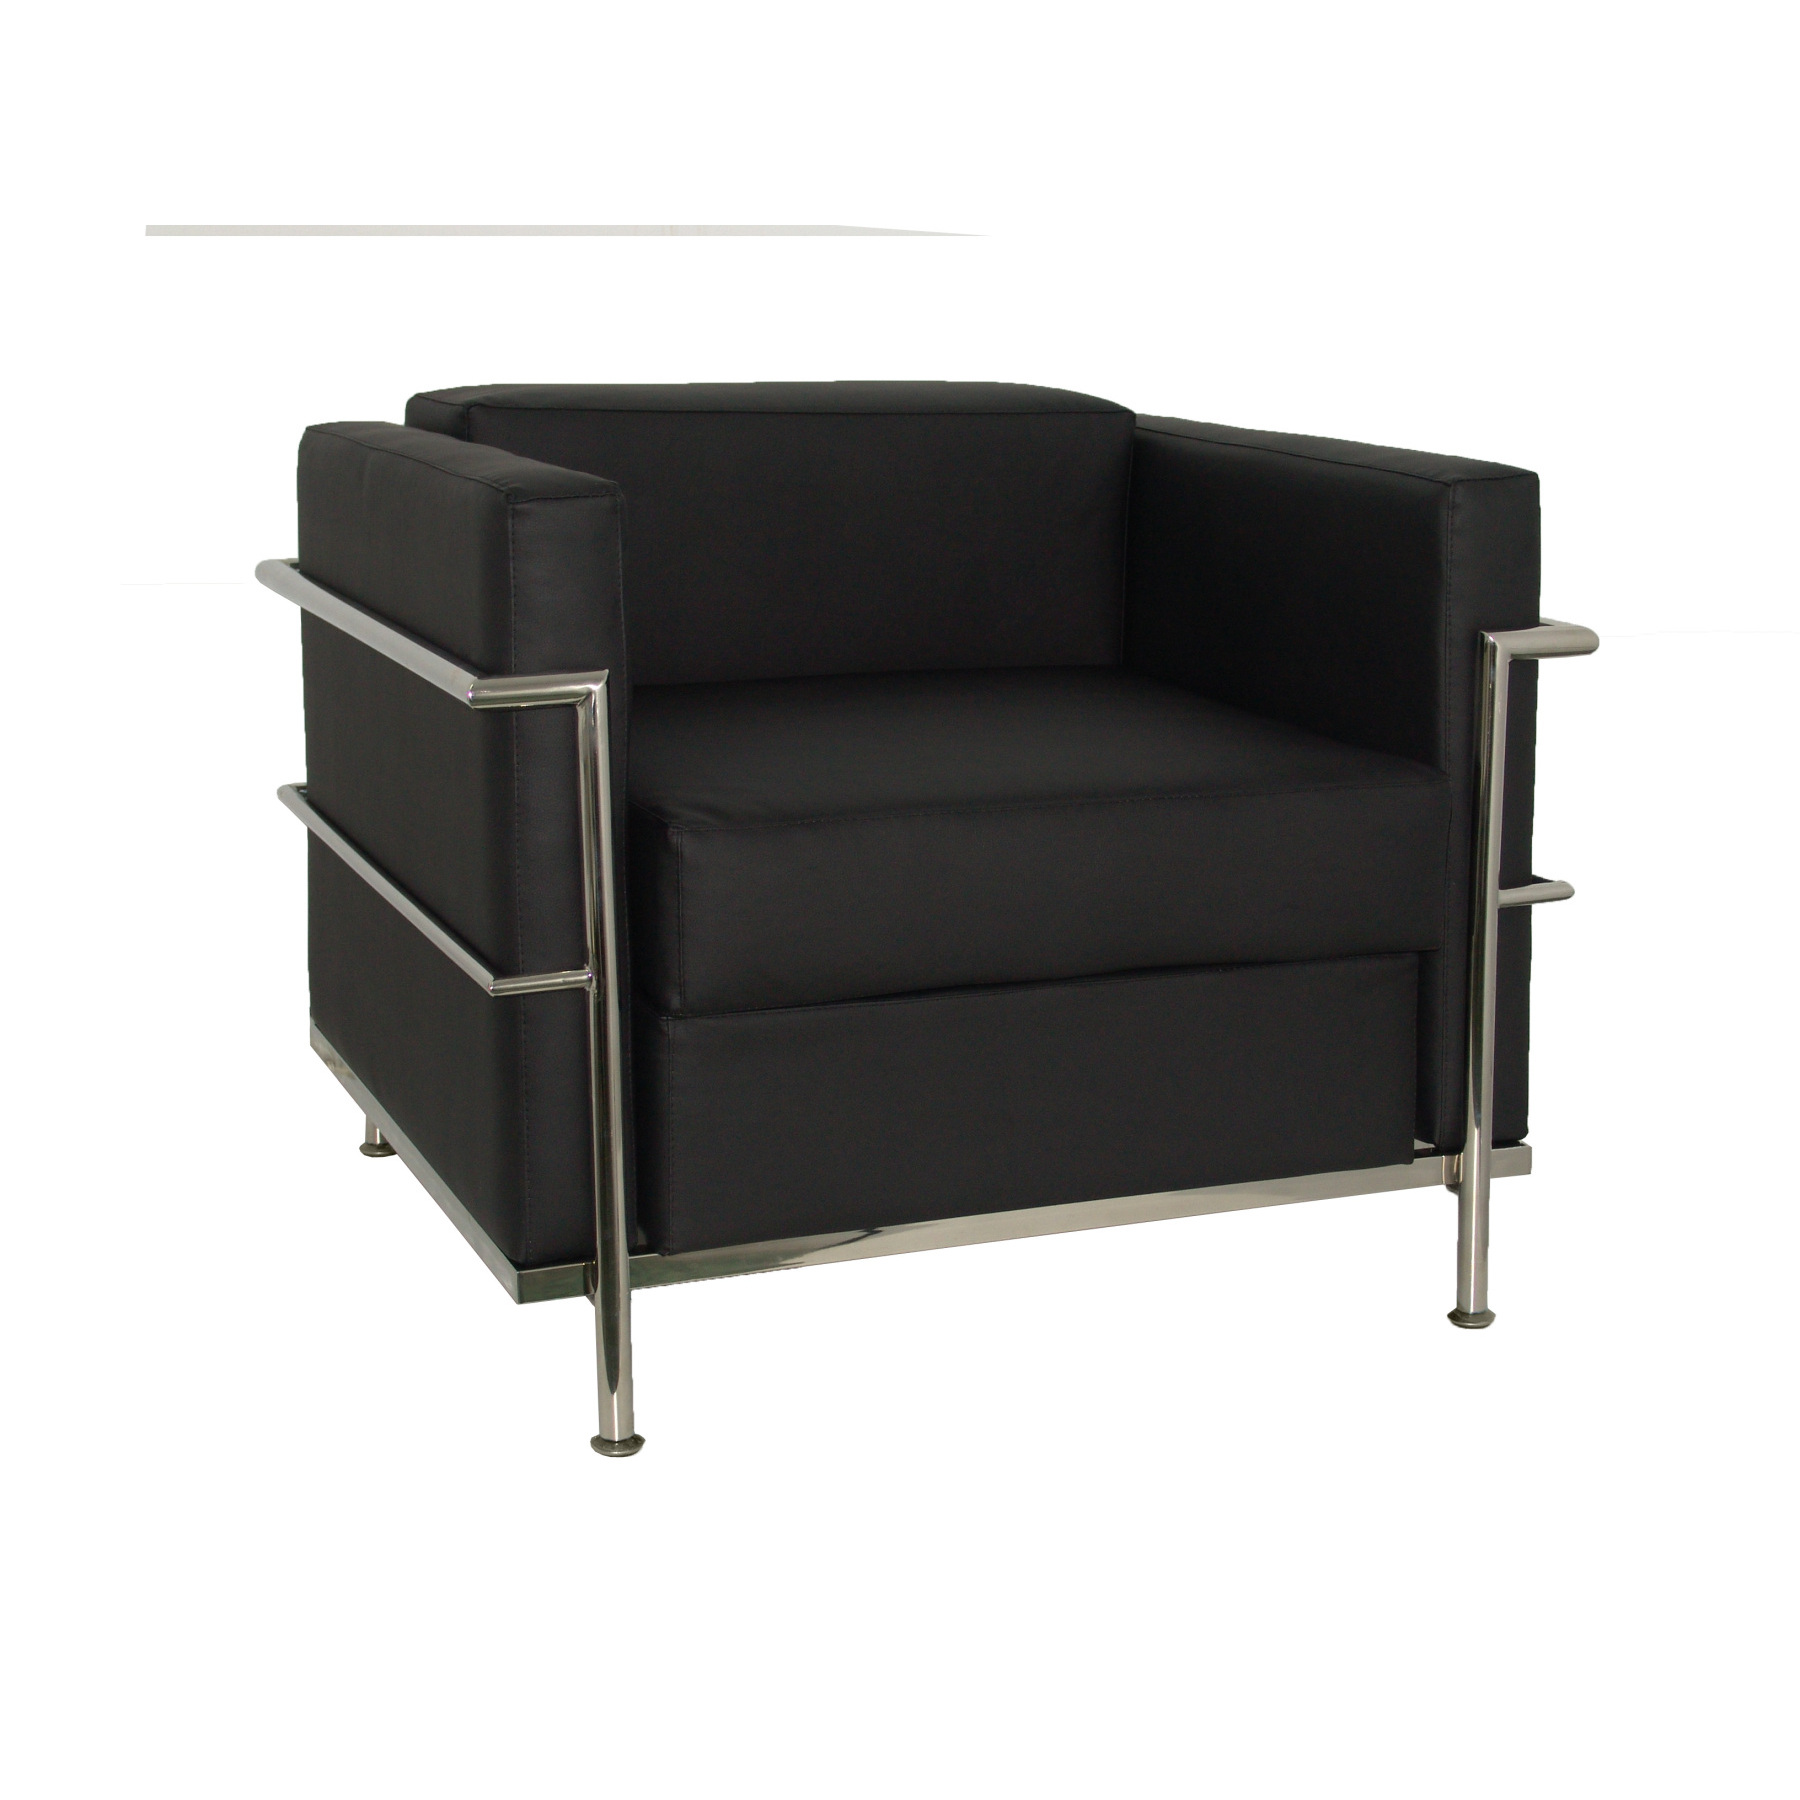 Sofa De Modulo/waiting One Square Upholstery In Skin Color Black TAPHOLE AND CURLED Model Nerpio